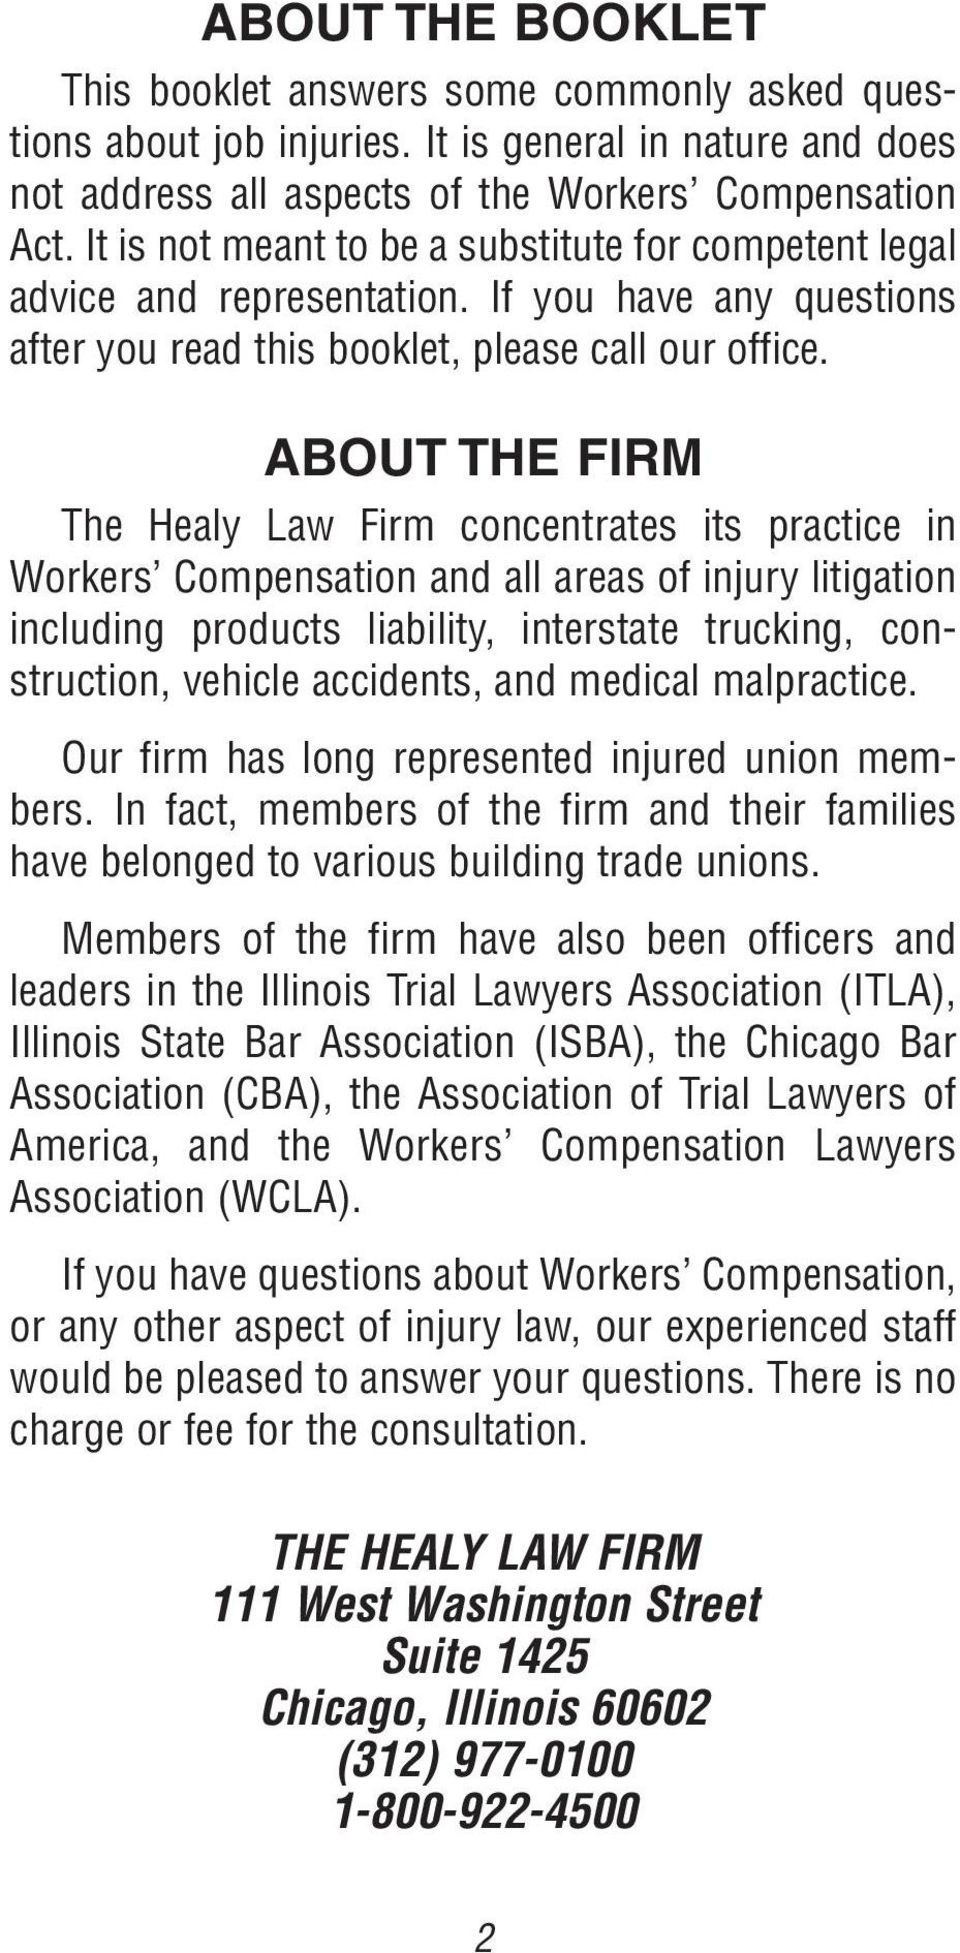 ABOUT THE FIRM The Healy Law Firm concentrates its practice in Workers Compensation and all areas of injury litigation including products liability, interstate trucking, construction, vehicle